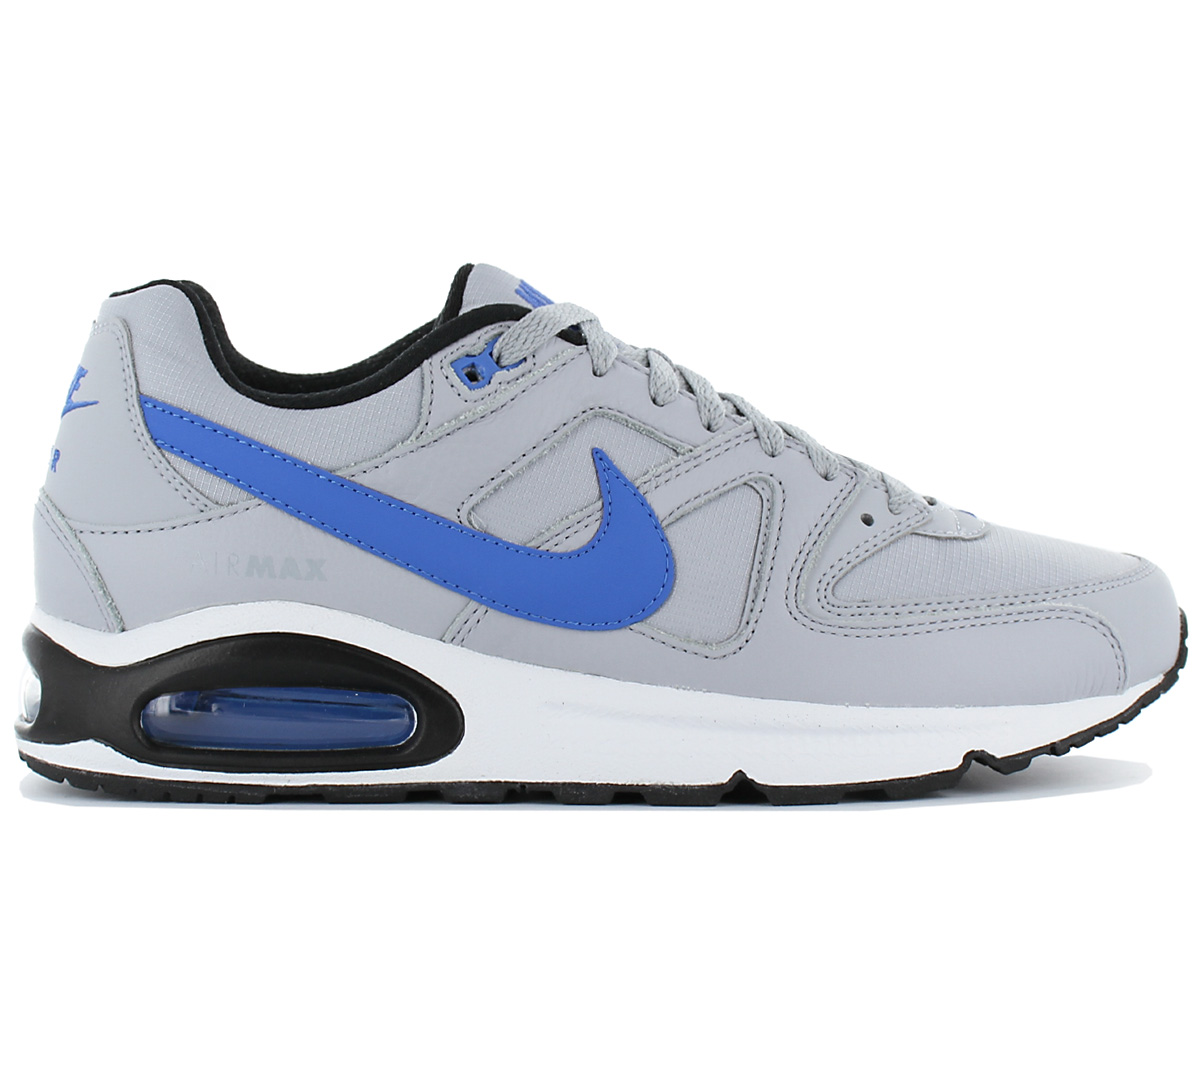 huge discount 88922 70352 Nike Air Max Command Men s Sneakers Shoes 629993-036 Trainers Grey ...